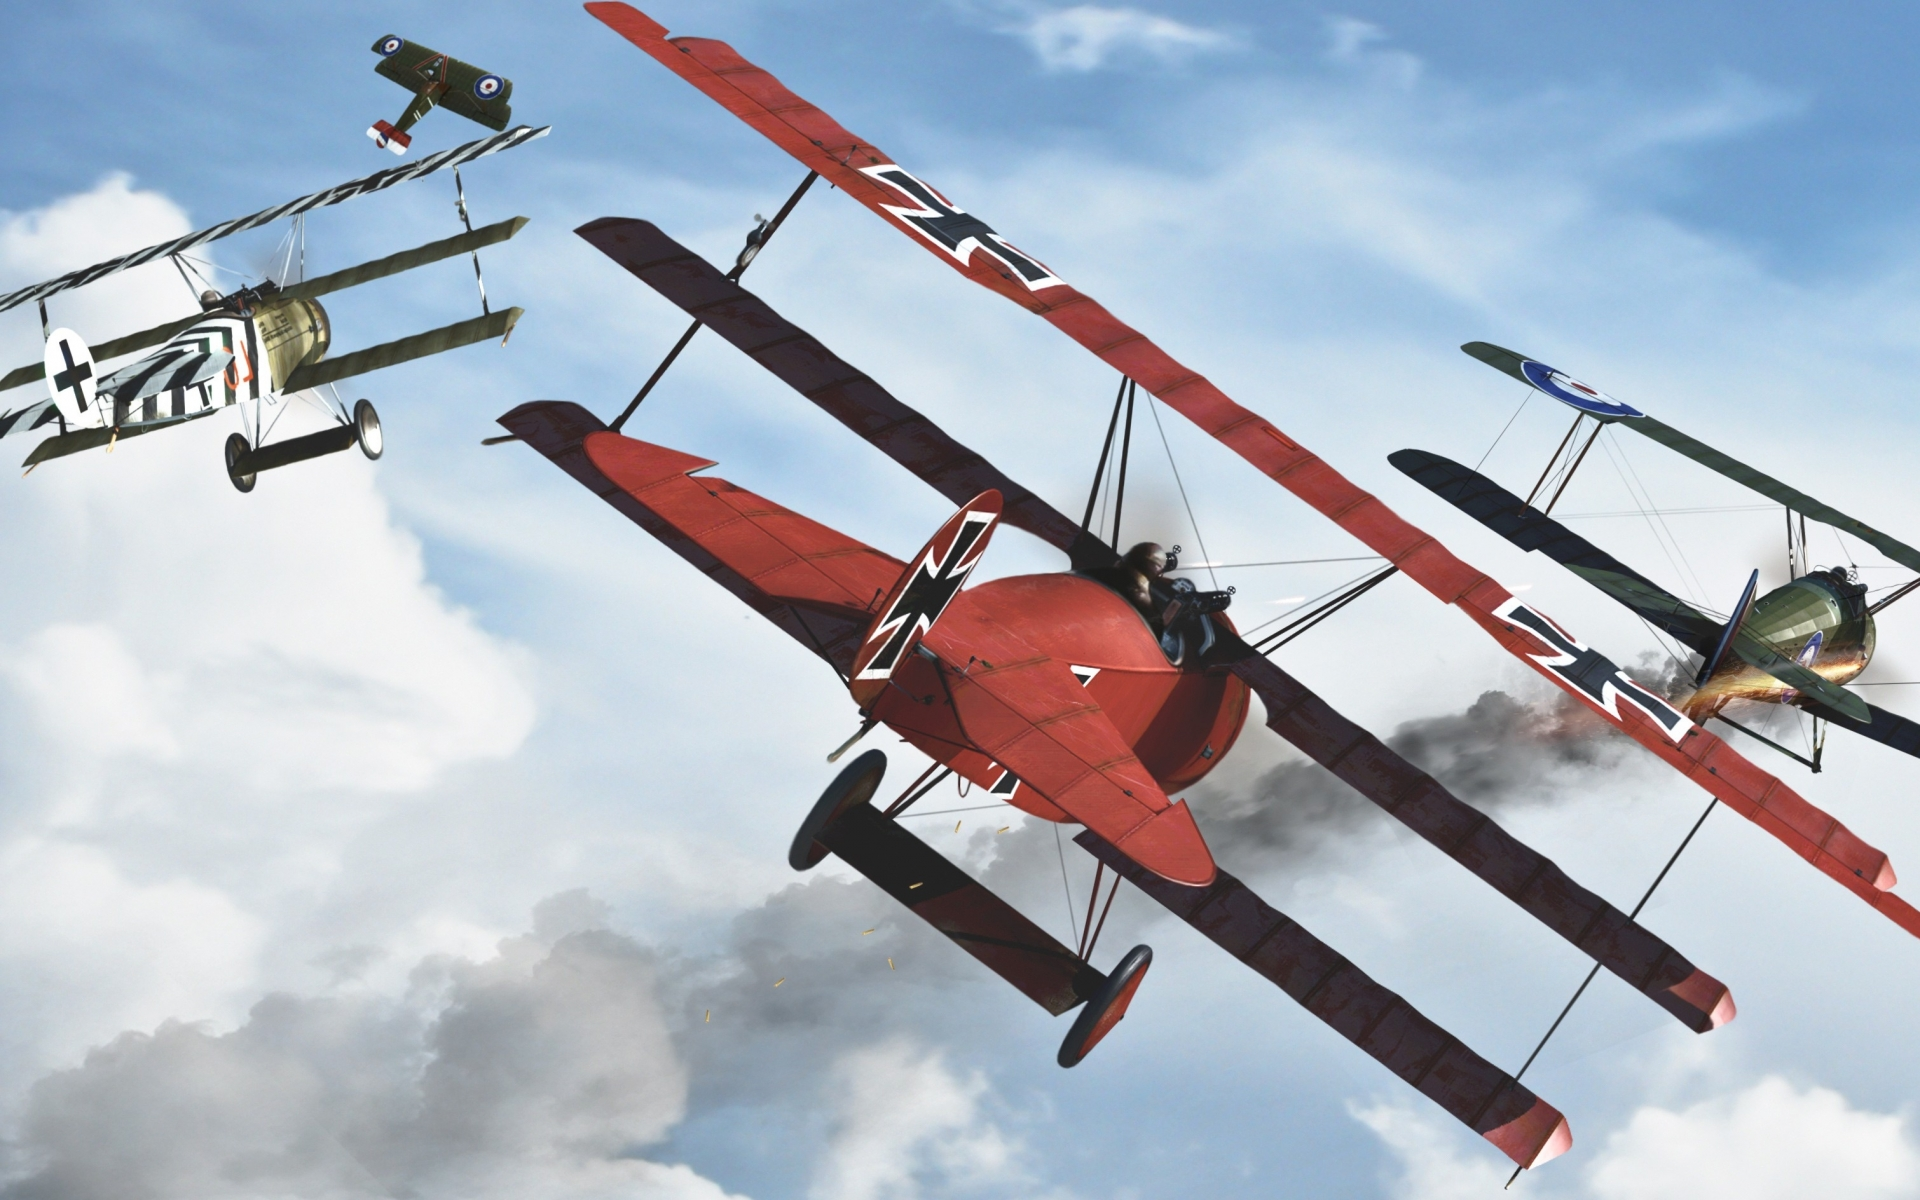 red baron airplane art military battles war weapons flight fly clouds sky wallpaper 1920x1200. Black Bedroom Furniture Sets. Home Design Ideas